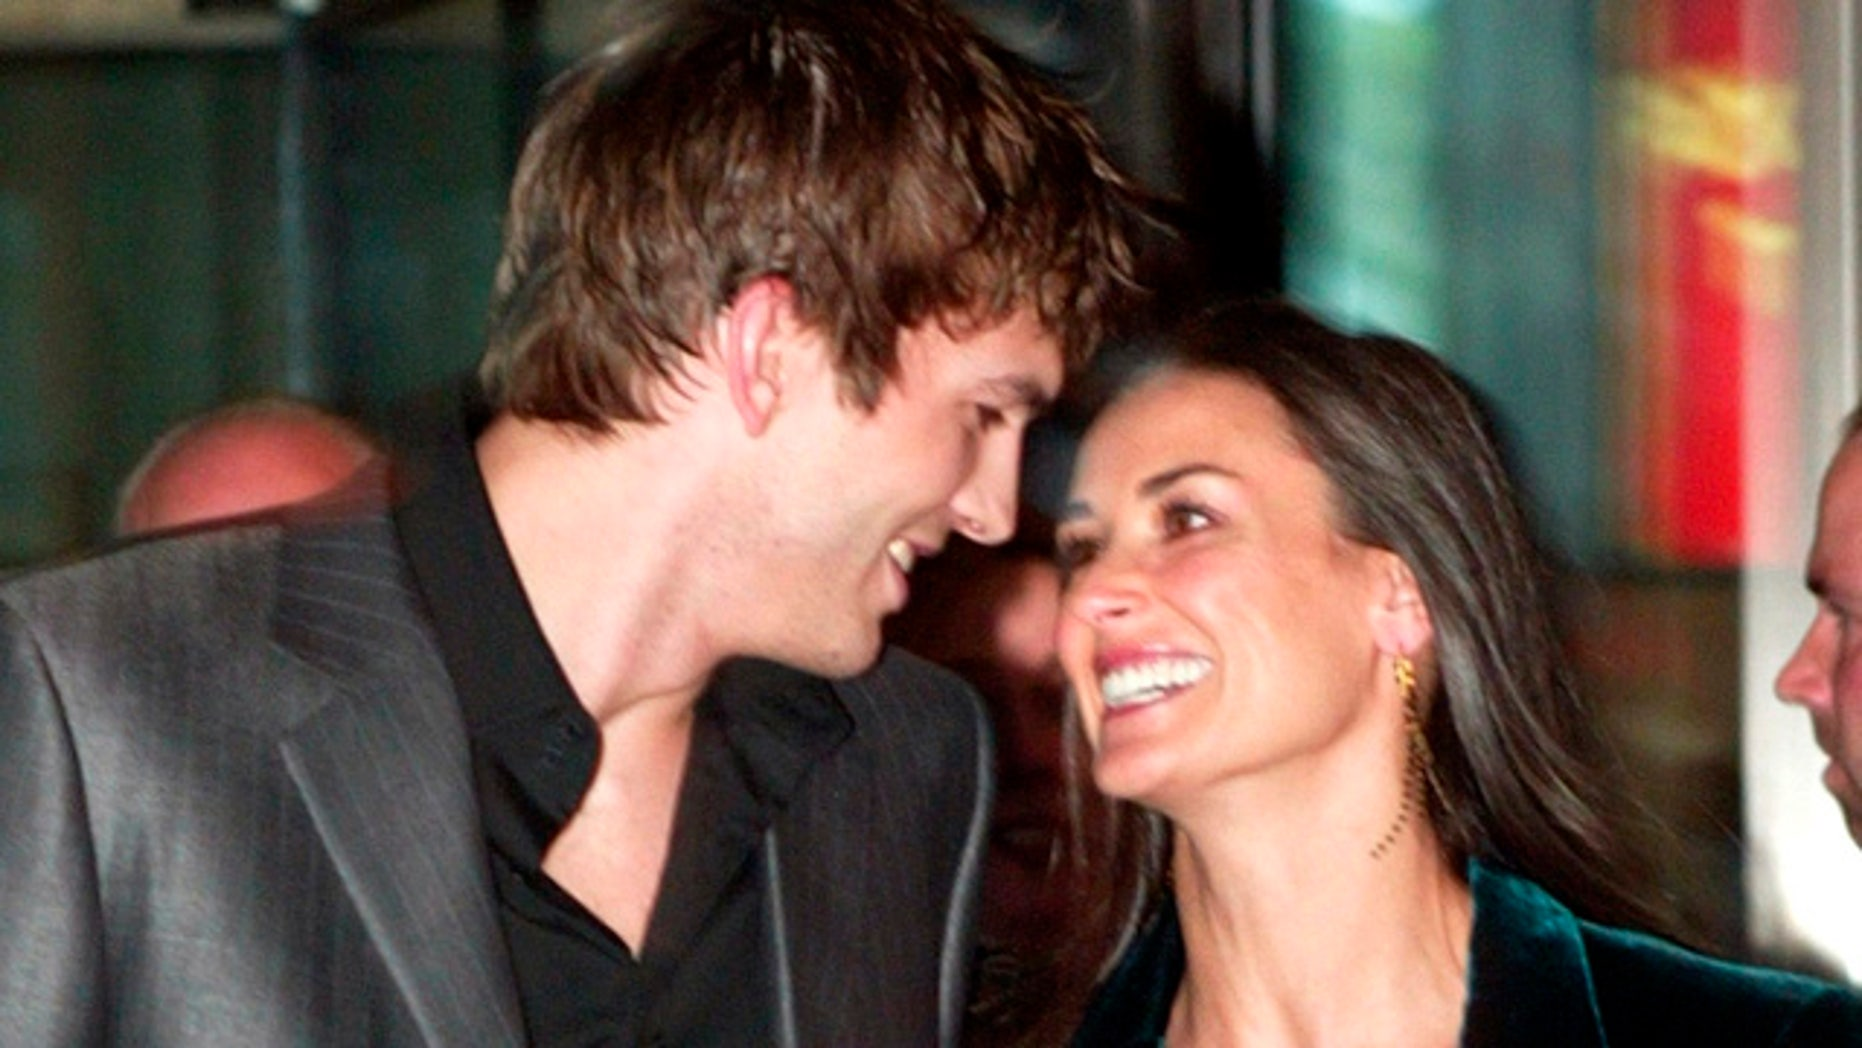 """Actress Demi Moore and her boyfriend actor Ashton Kutcher arrive at aspecial screening of the film """"Charlie's Angels Full Throttle"""" June 25,2003 in New York City. The film opens June 27th in the United States.REUTERS/Jeff ChristensenJC/ME"""